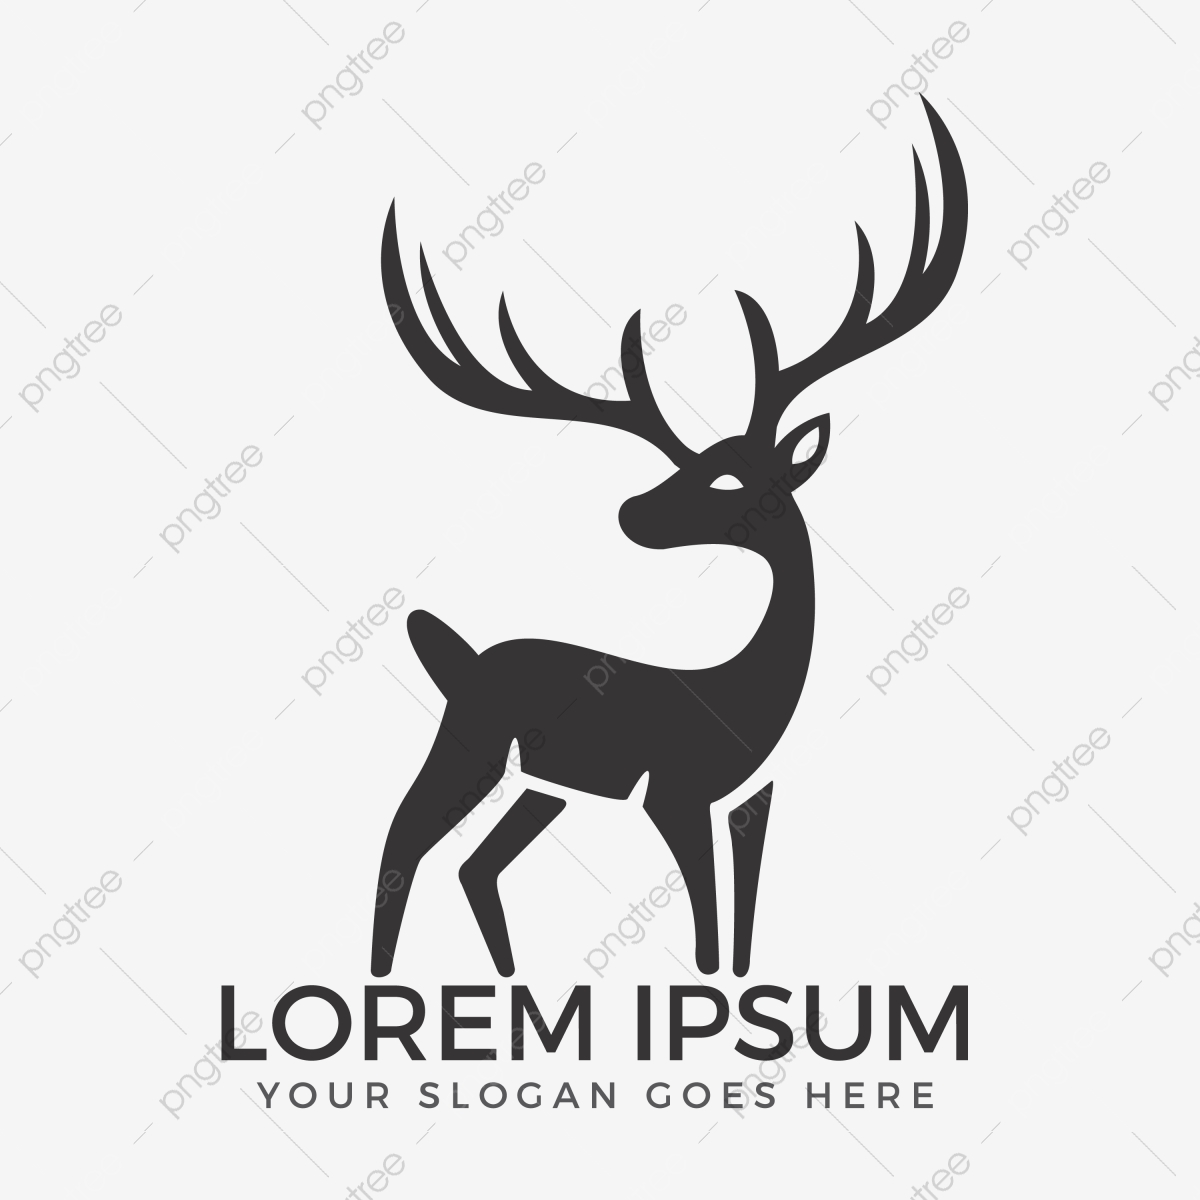 Deer Vector Logo Design, Abstract, Animal, Antler PNG and Vector.